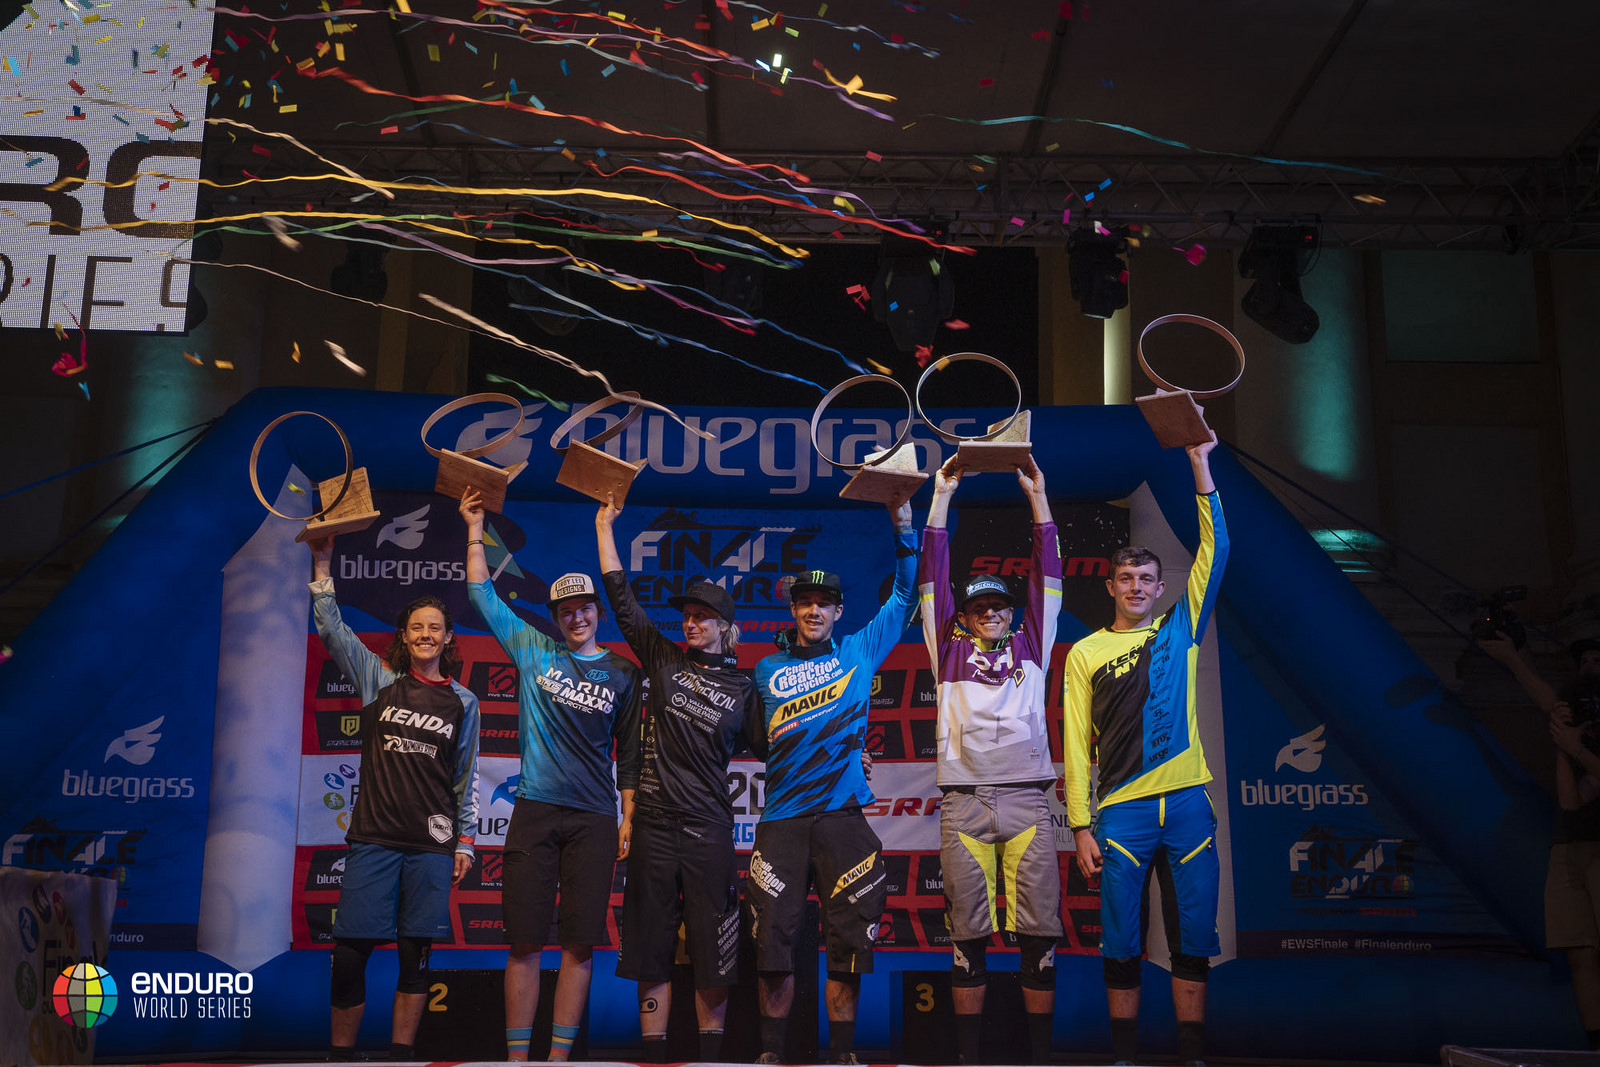 Enduro World Series Finals